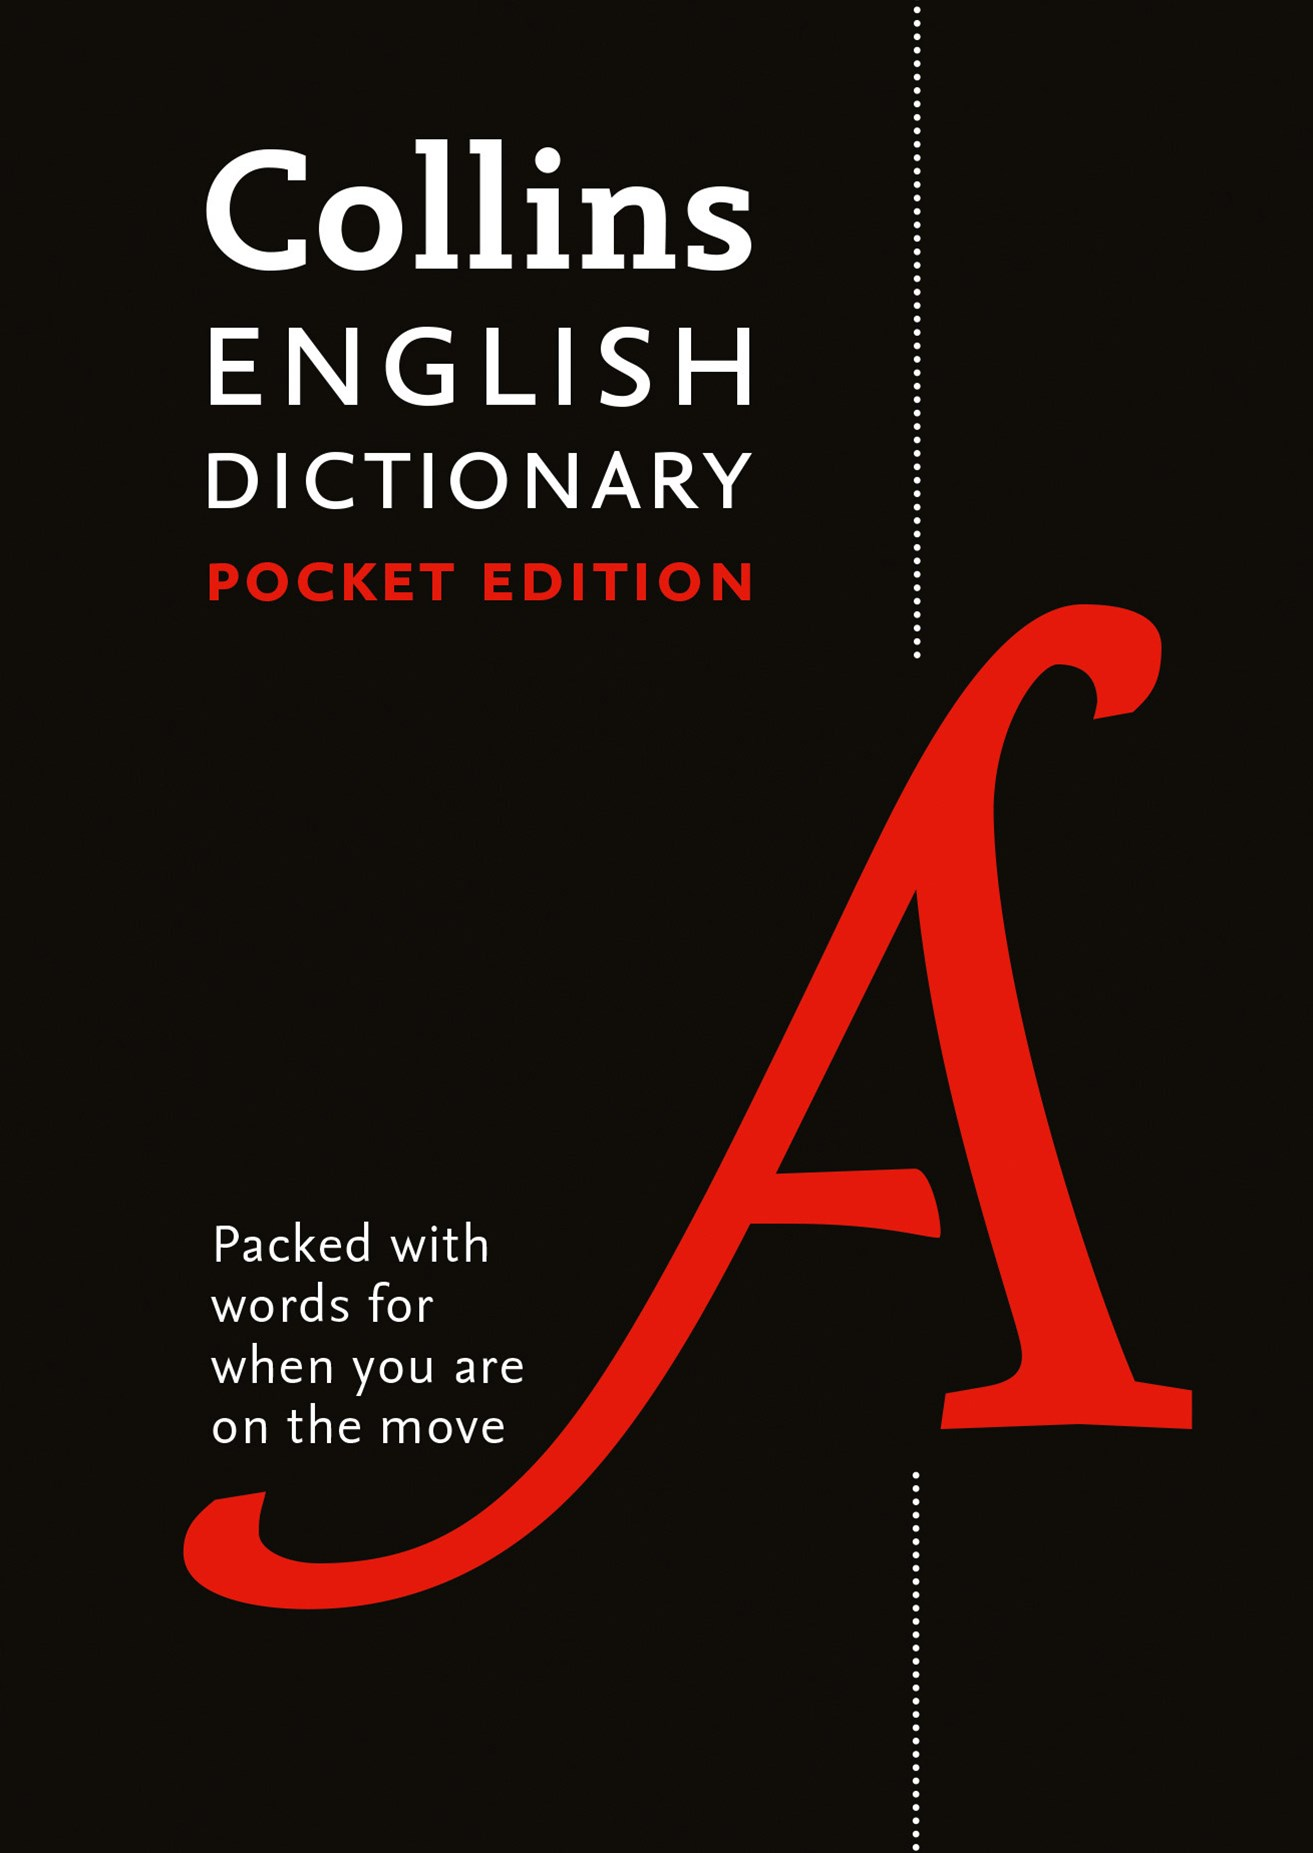 Collins English Dictionary Pocket Edition [10th Edition]